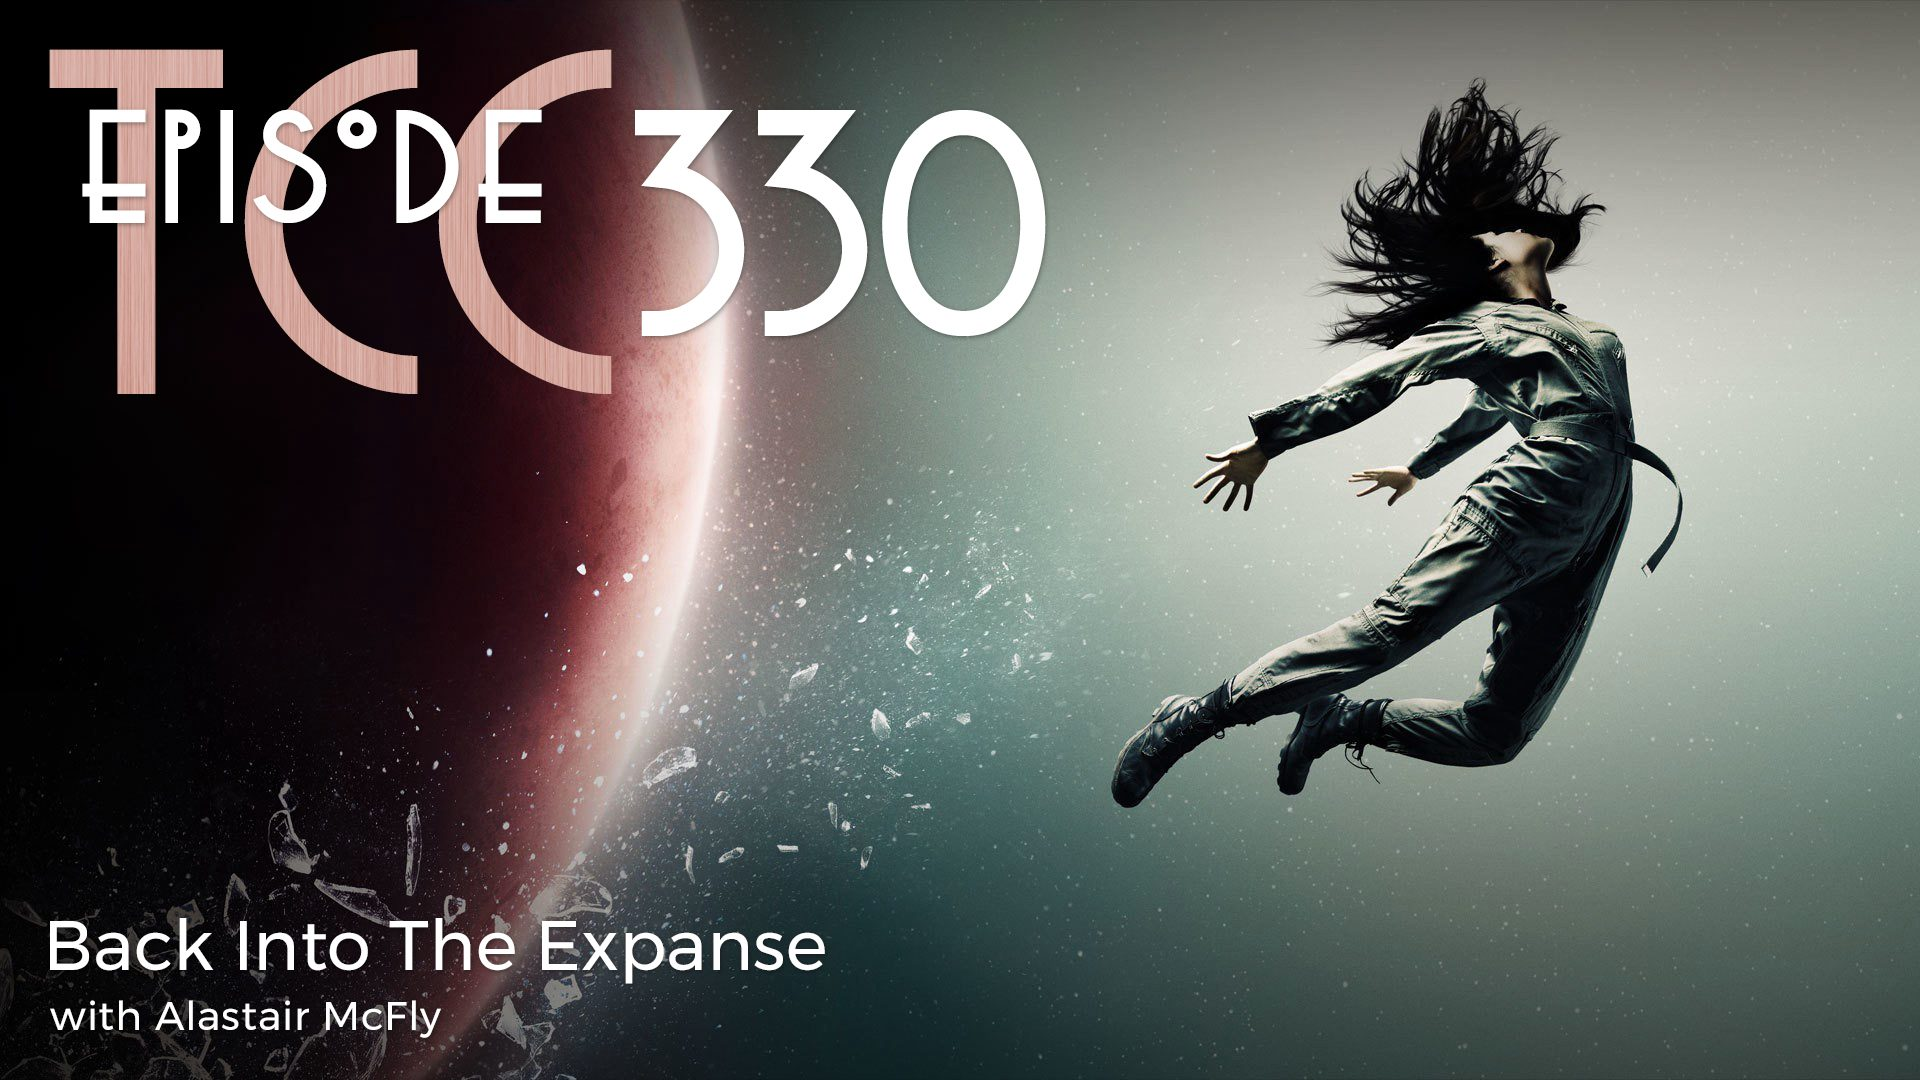 The Citadel Cafe 330: Back Into The Expanse